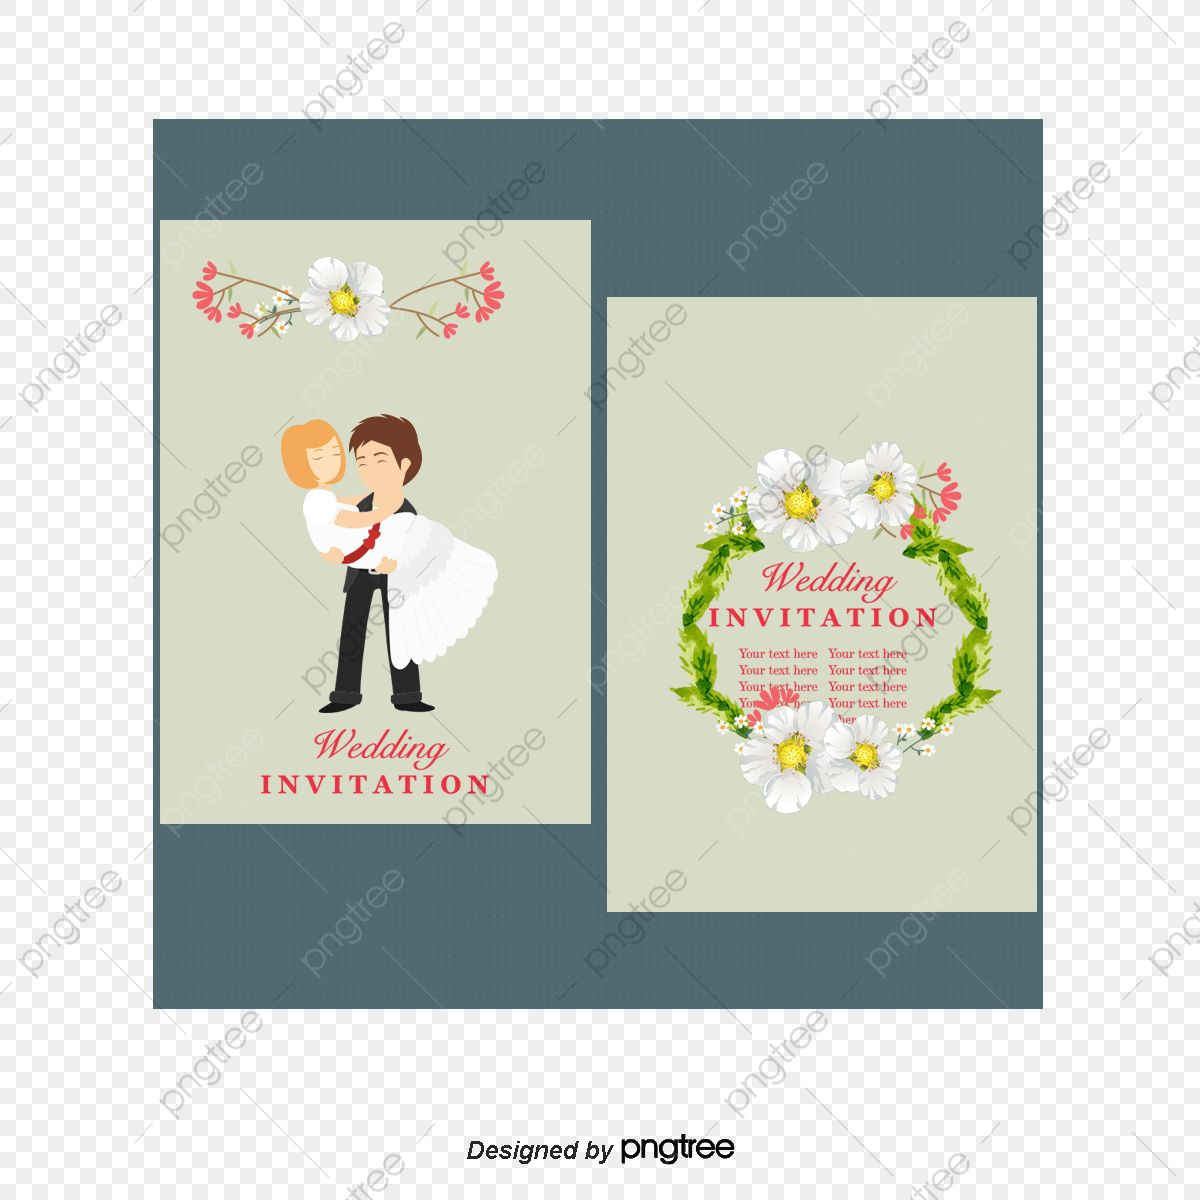 007 Impressive Free Wedding Invitation Template Download Highest Clarity  Psd Card IndianFull